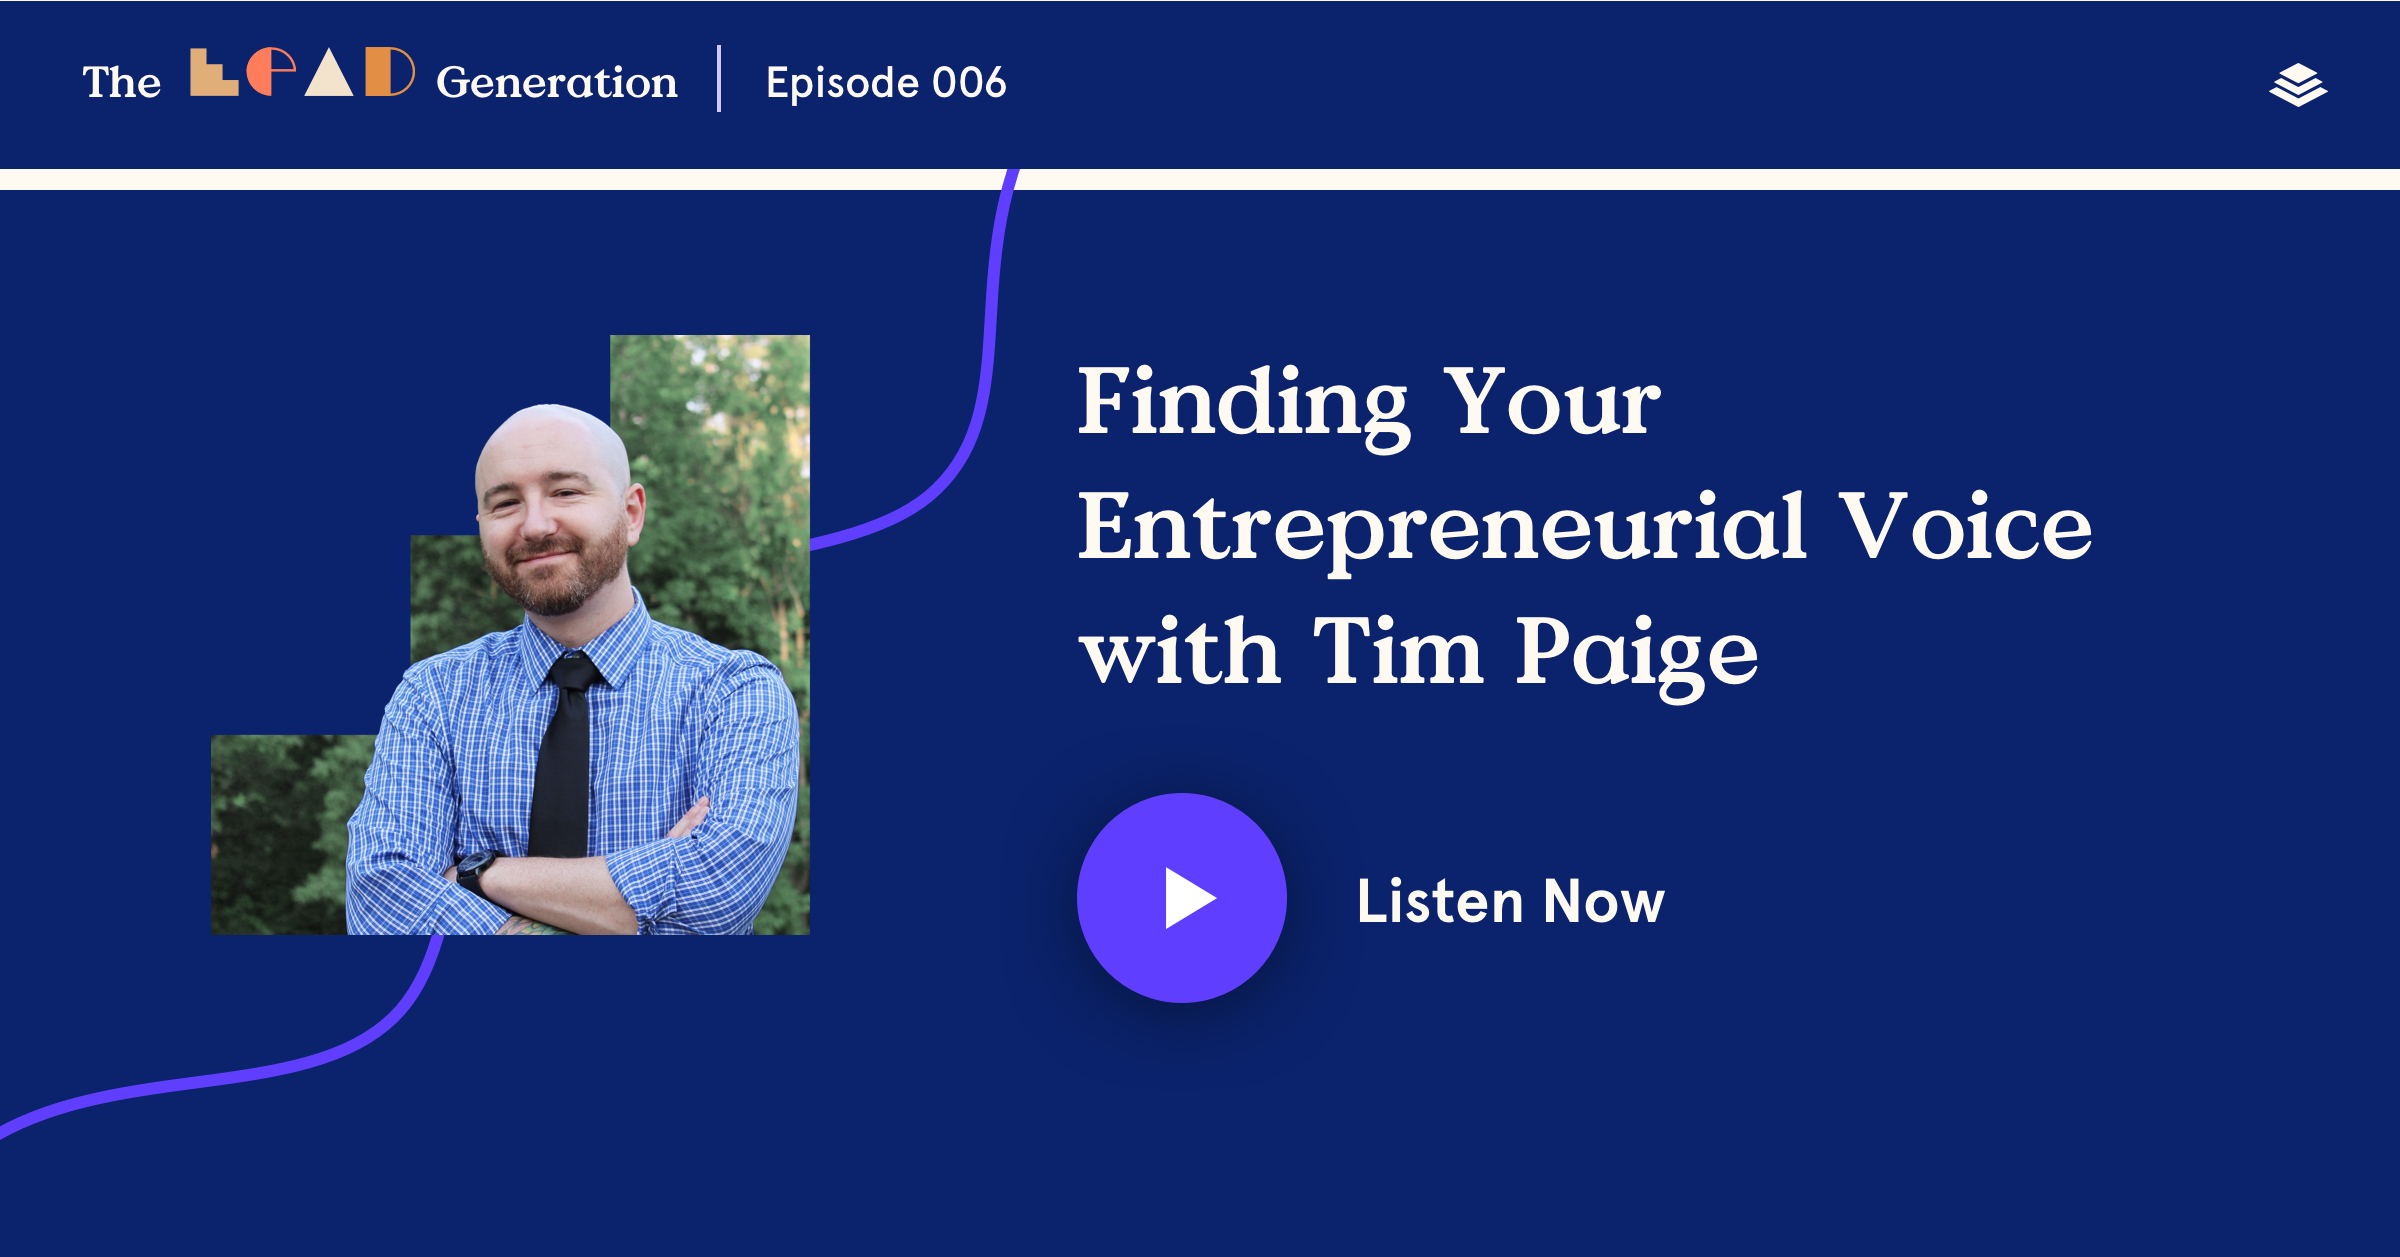 Tim Paige on The Lead Generation